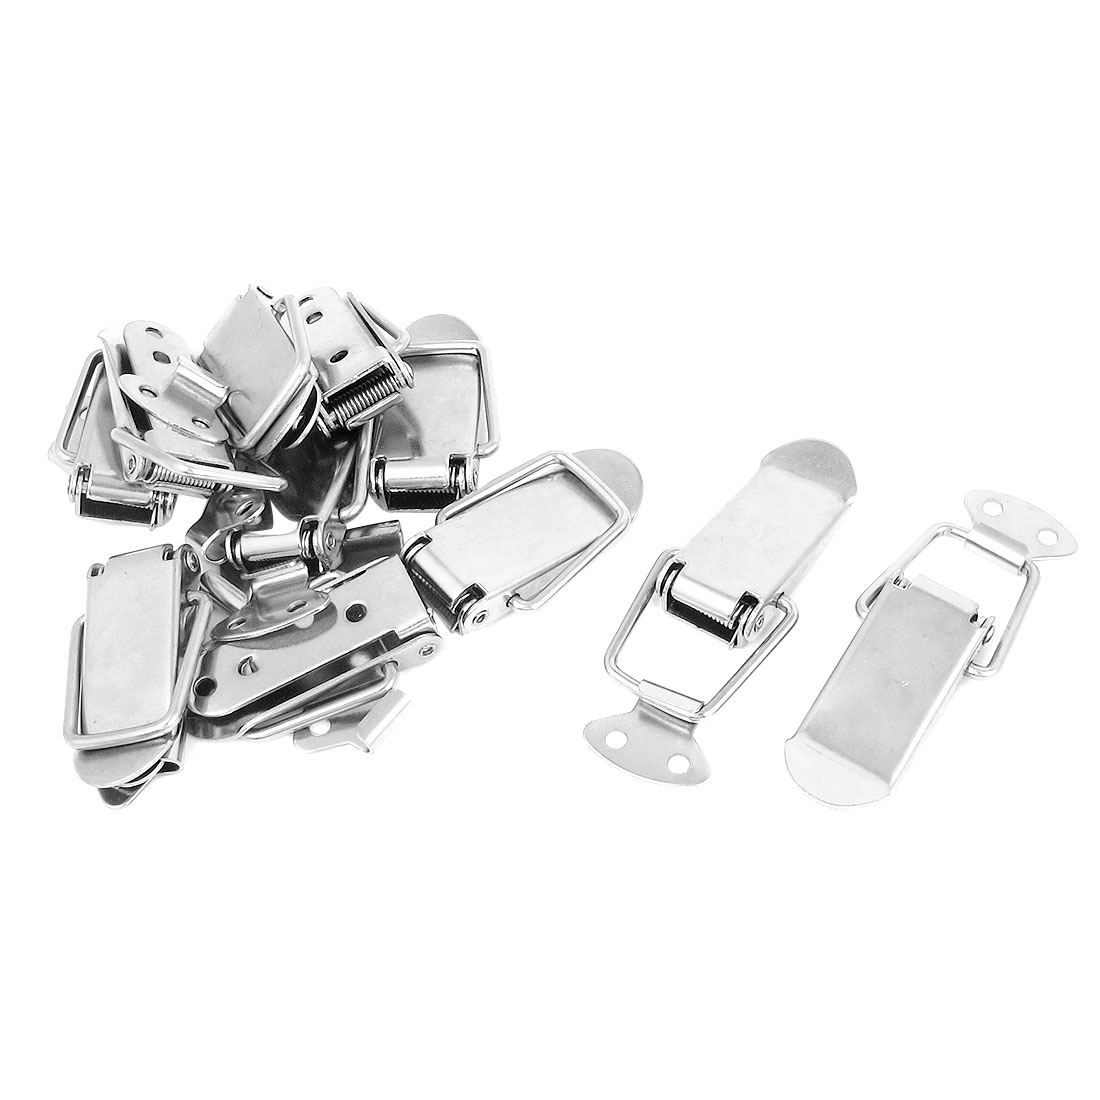 11pcs Sillver Tone Metal Spring Toolbox Box Chest Case Drawer Lock Toggle Latch Hasp